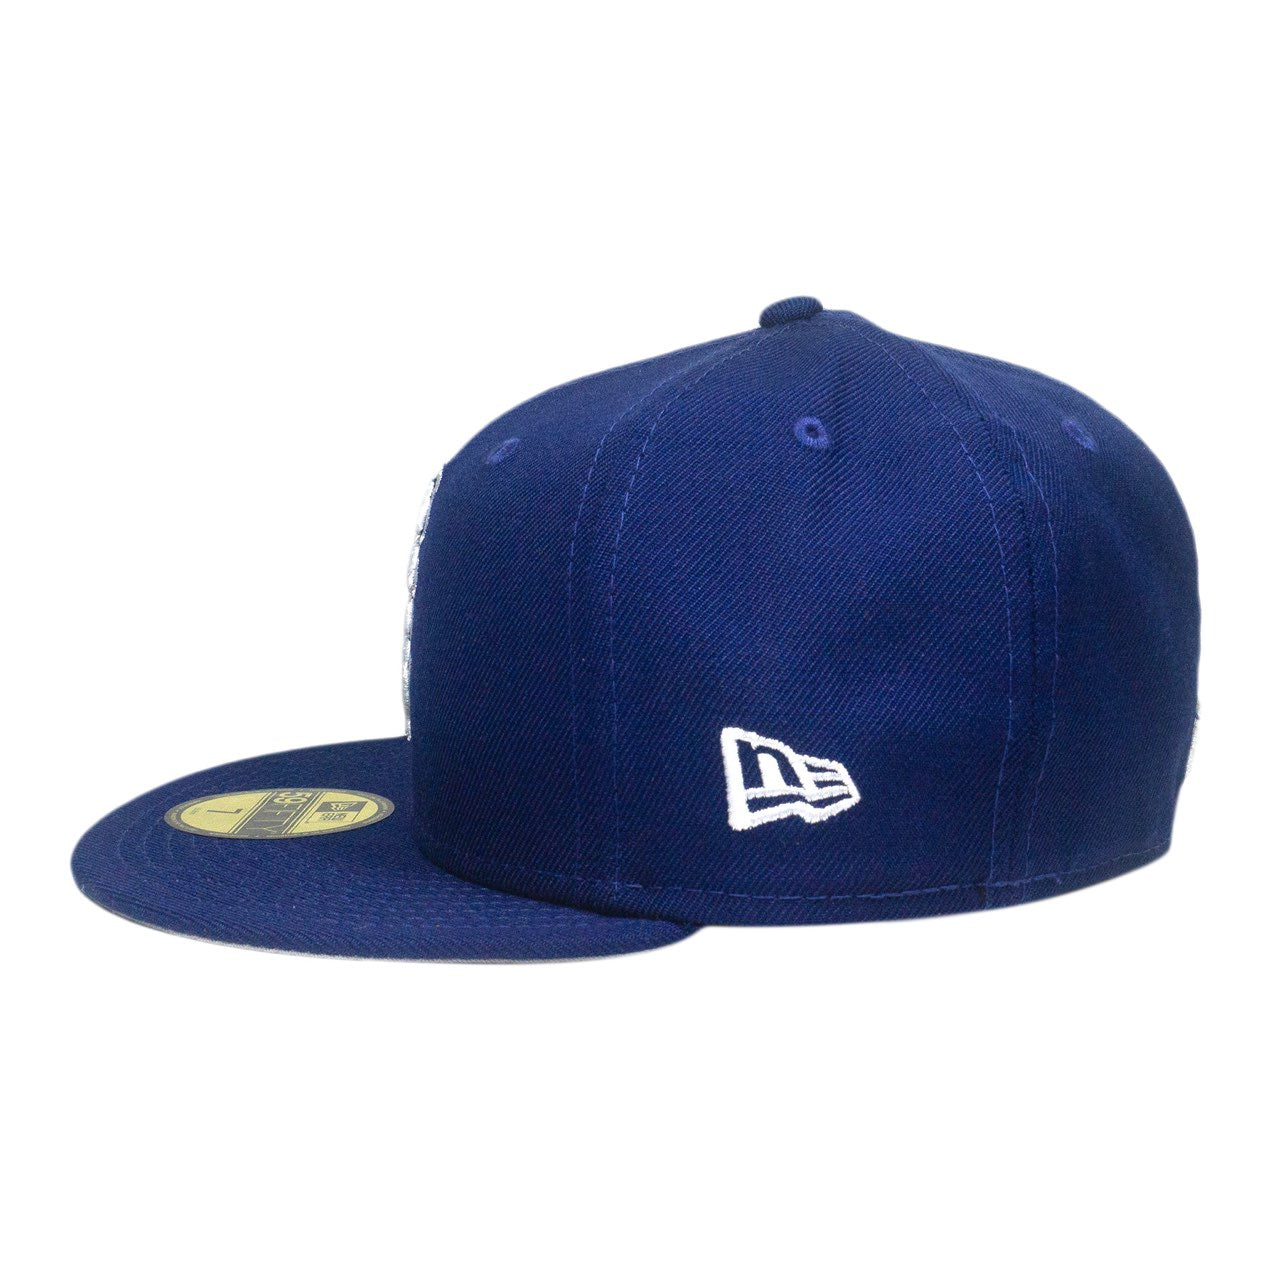 Cubs Cooperstown Fitted Hat